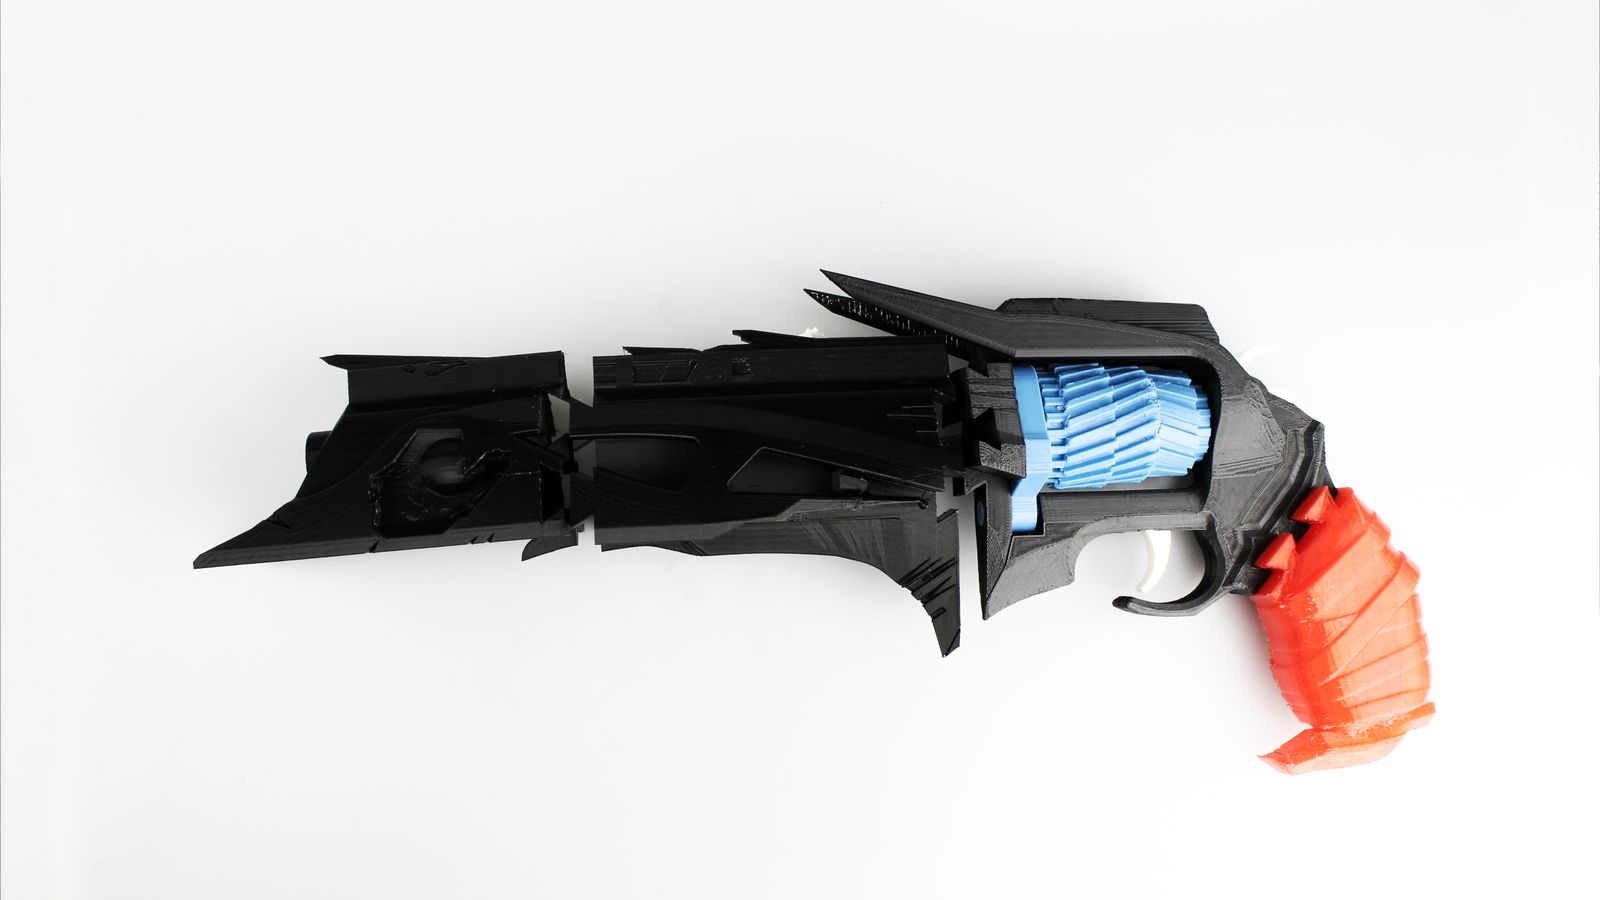 3d Wallpaper South Africa You Can 3d Print Your Own Destiny Hand Cannon In 24 Hours